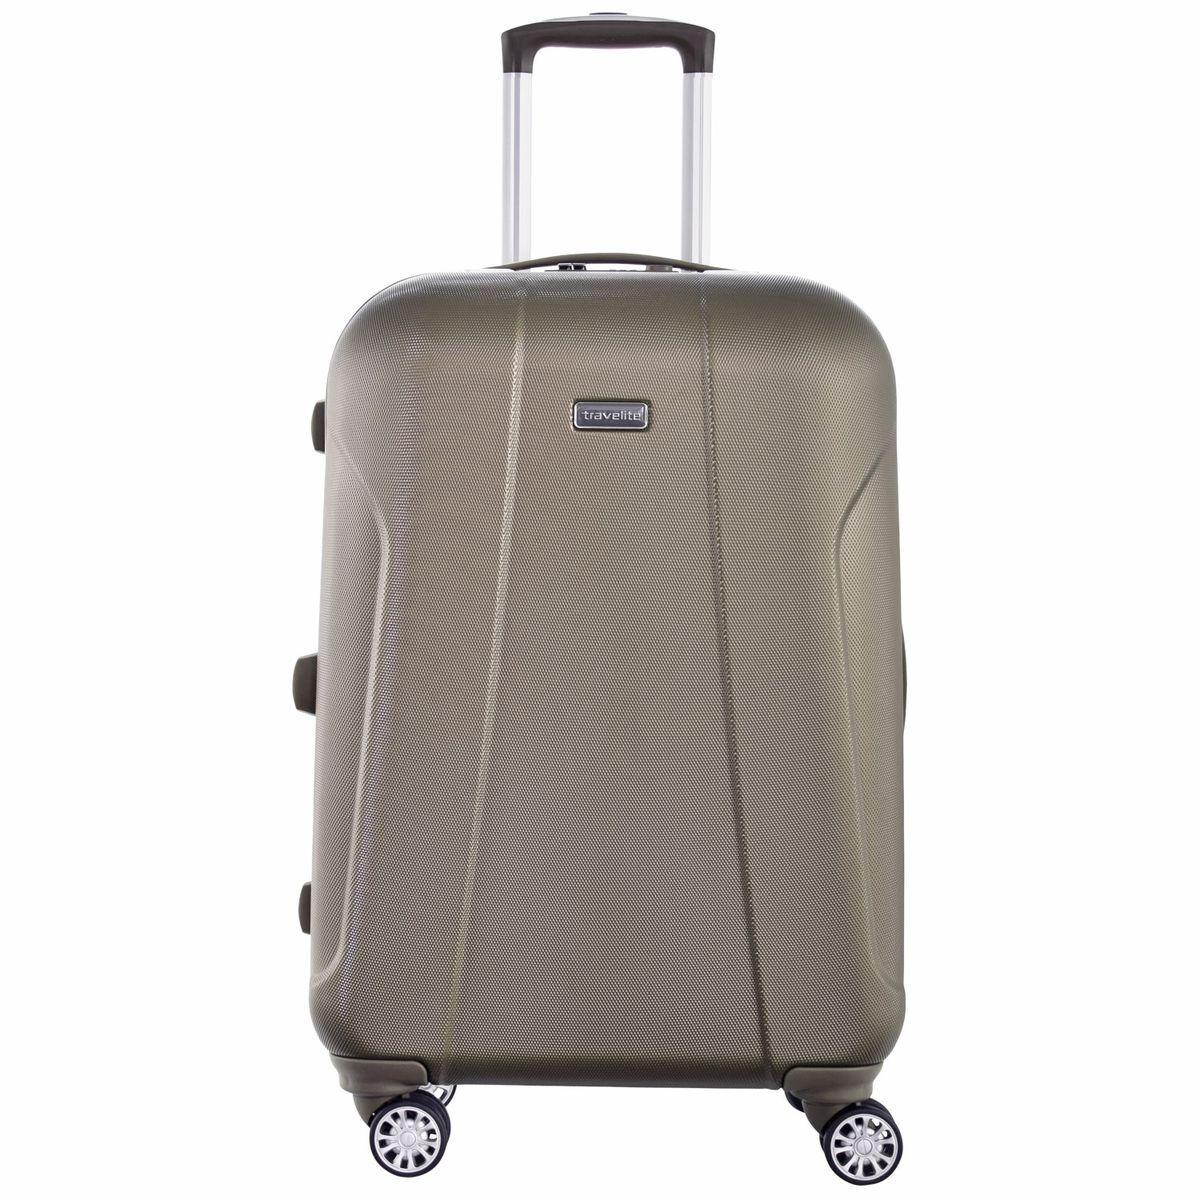 Travelite Elbe Two Trolley M 65 Cm Reisekoffer & Trolleys Büro & Schreibwaren